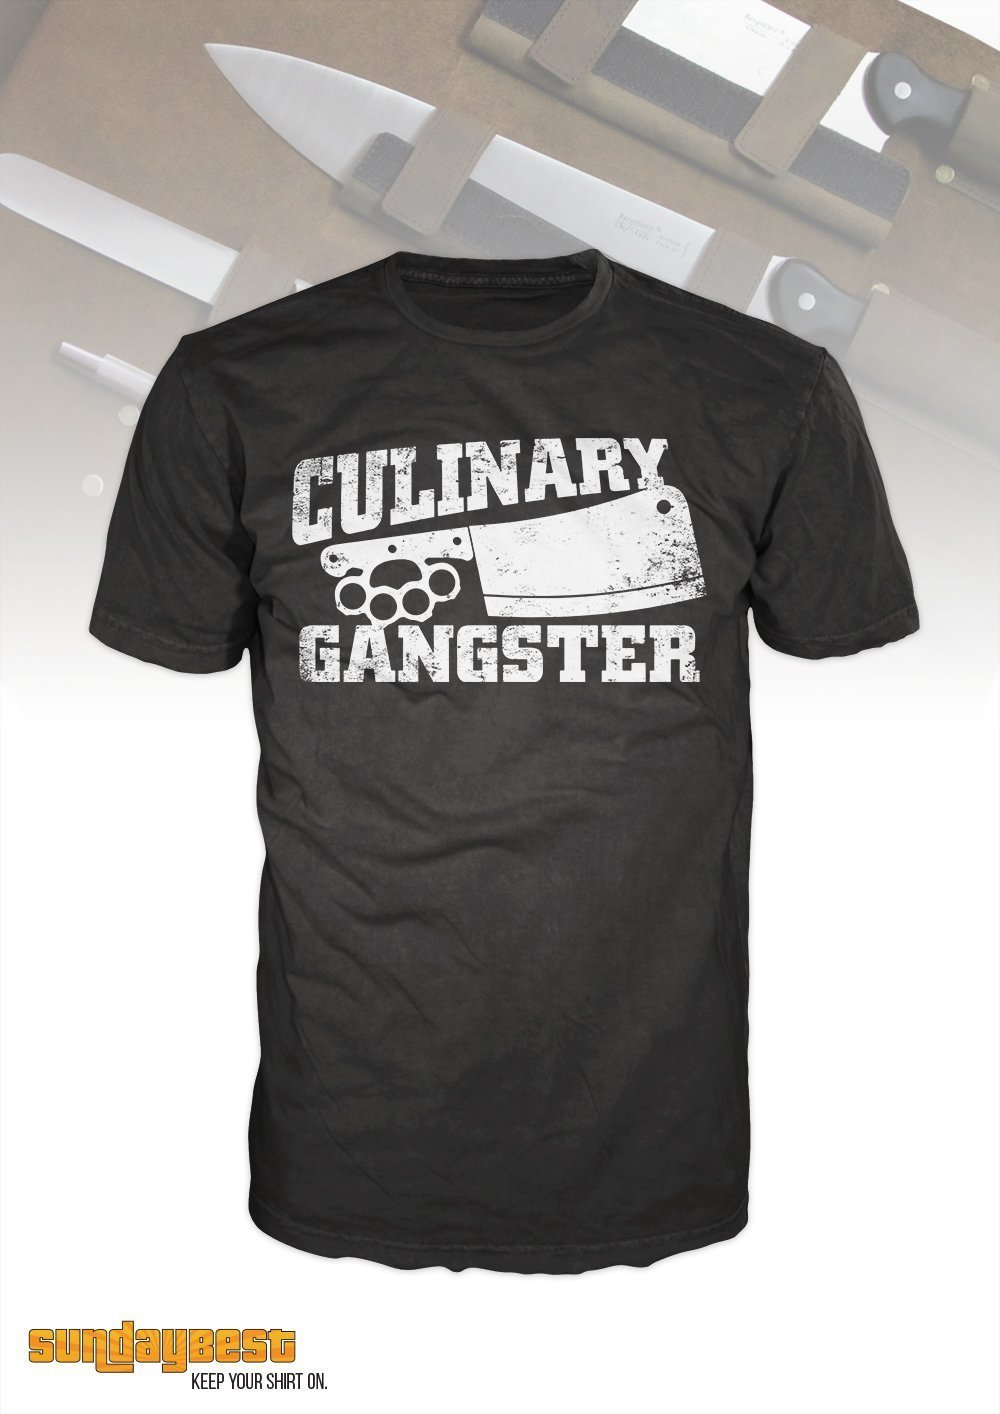 c9c12c5b6 Amazon.com: Gift for Chefs, Funny Chefs T-Shirt Culinary Gangster - Line  and prep cook, foodie, mens, womens: Handmade